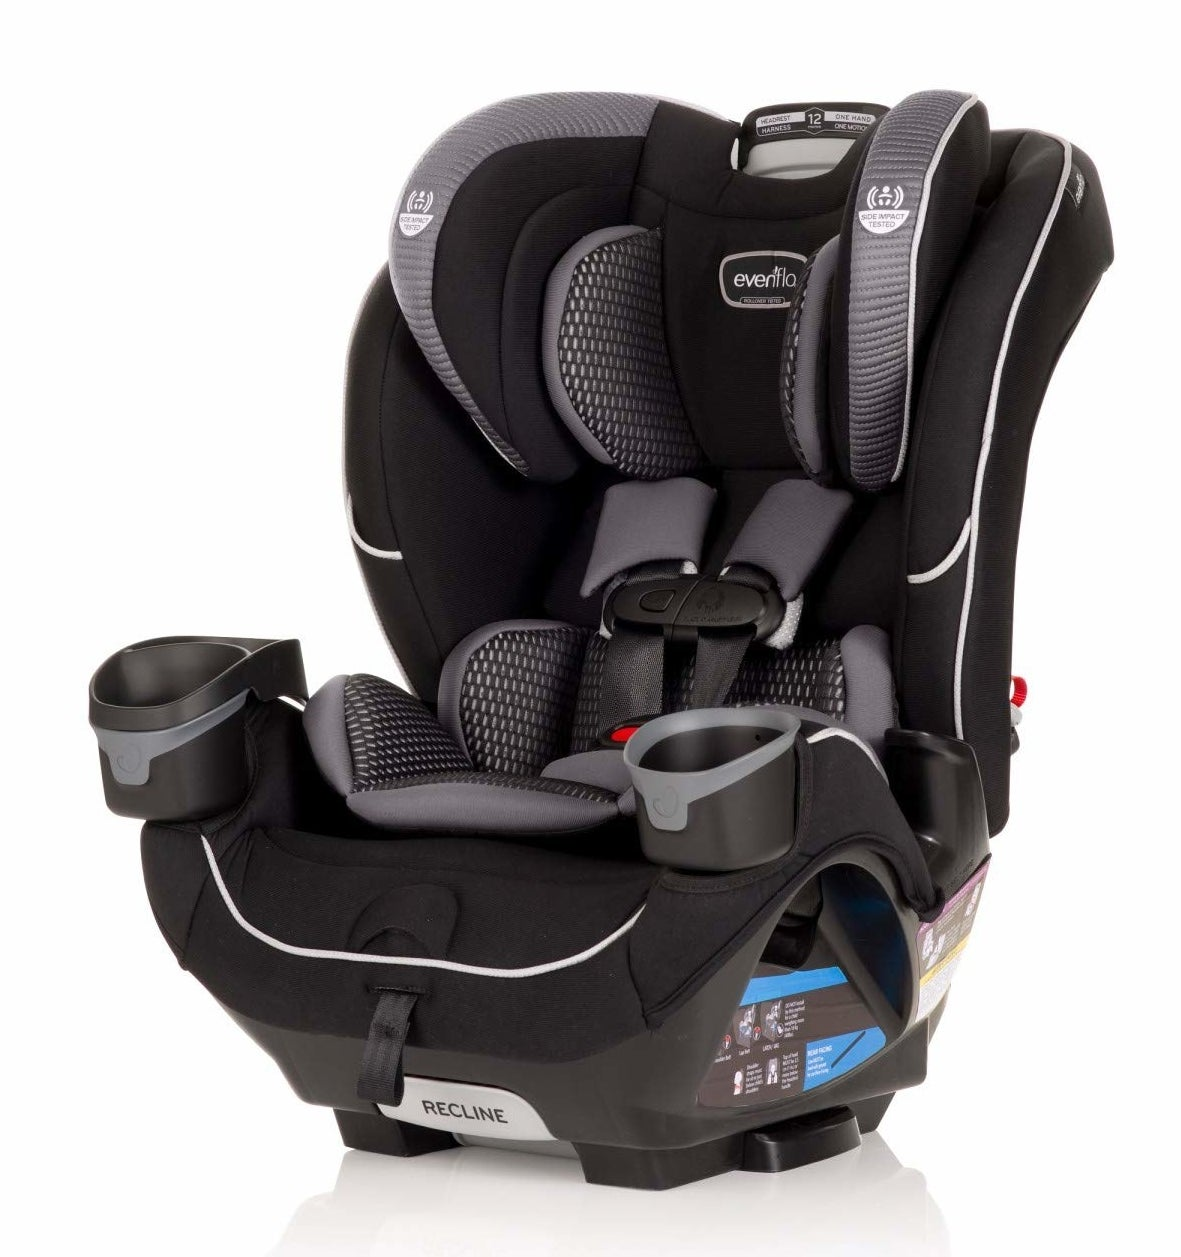 A black car seat with gray and silver accents